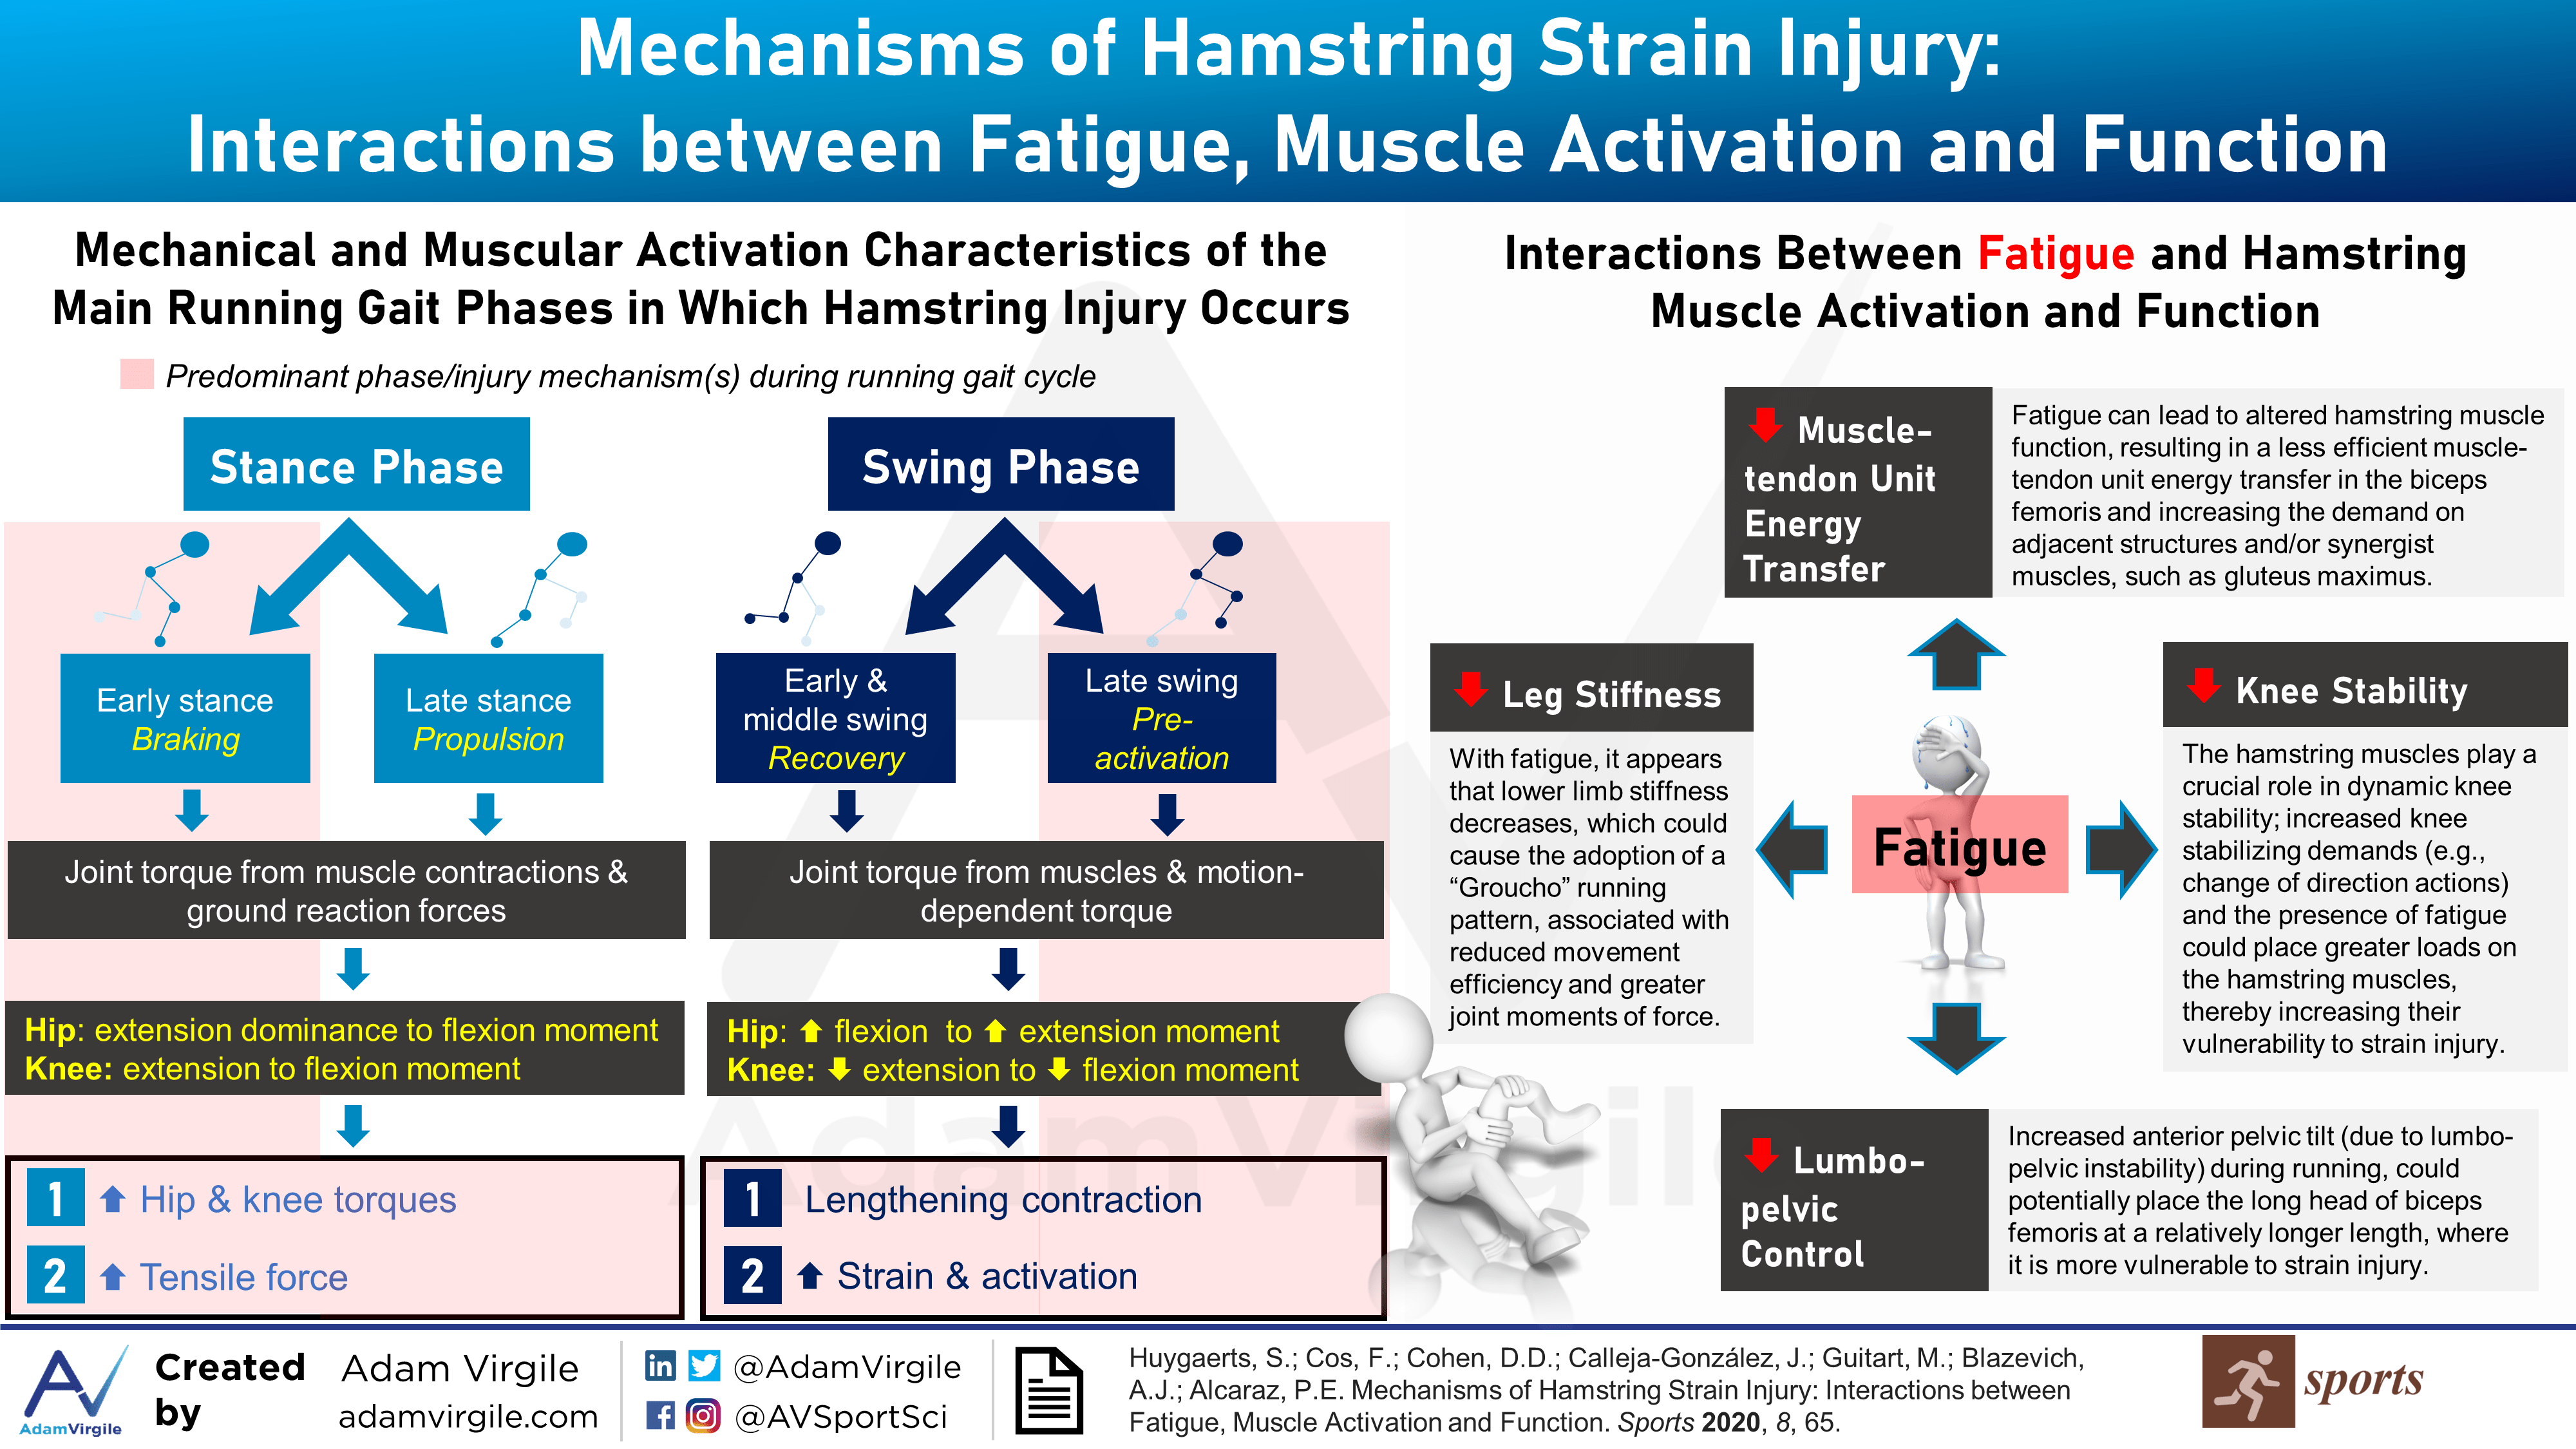 Mechanisms of Hamstring Strain Injury: Interactions between Fatigue, Muscle Activation and Function